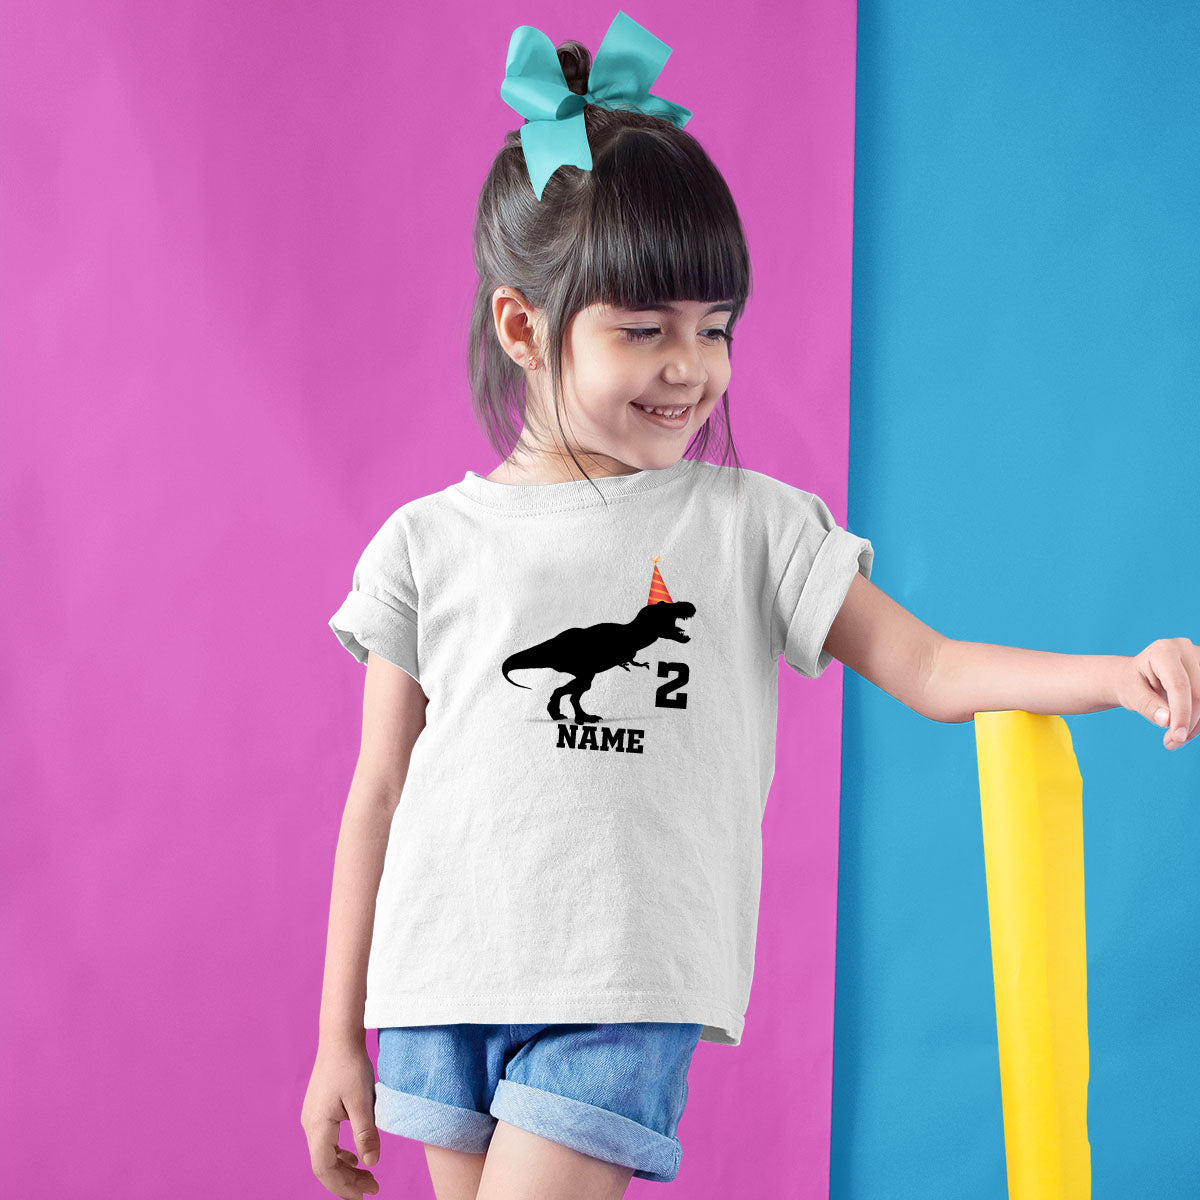 Sprinklecart Customized Cute Dinosaur Birthday Wear | 2nd Birthday T Shirt